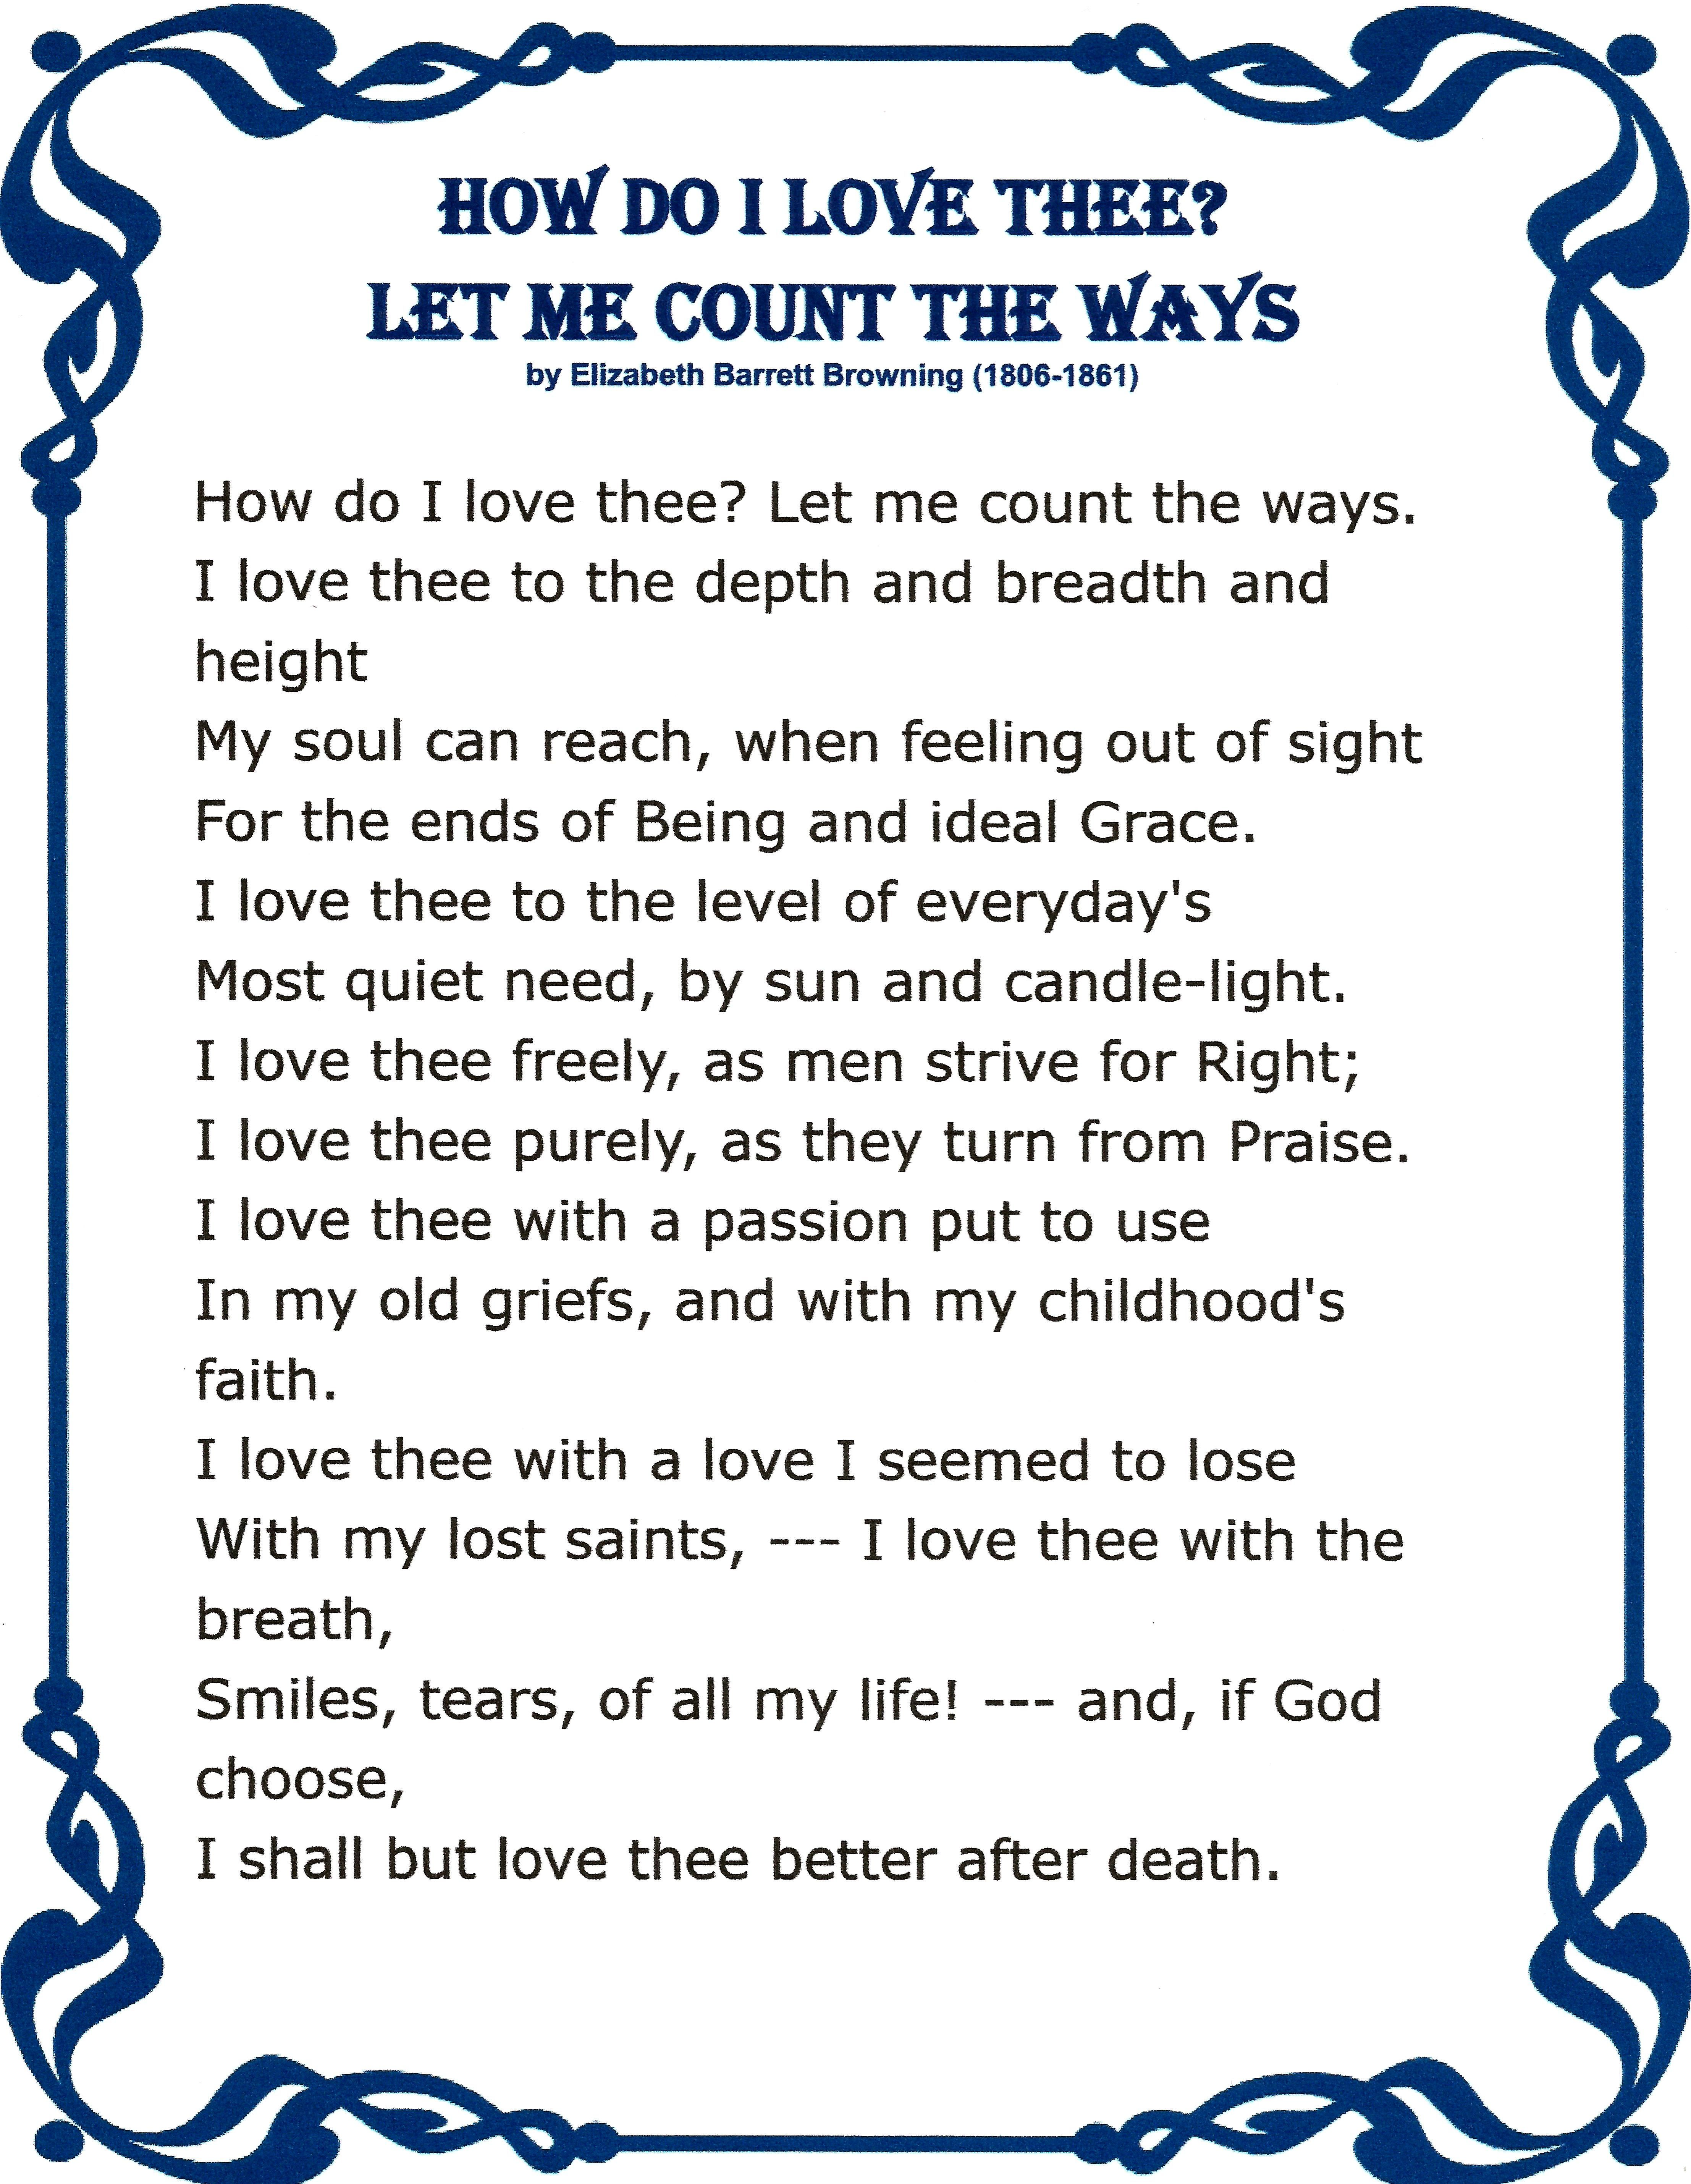 """how do i love thee? by elizabeth barrett browning essay 15102012 elizabeth barrett browning in her love sonnet """"how do i love thee"""" beautifully expresses her love for her husband listing the different ways in which."""